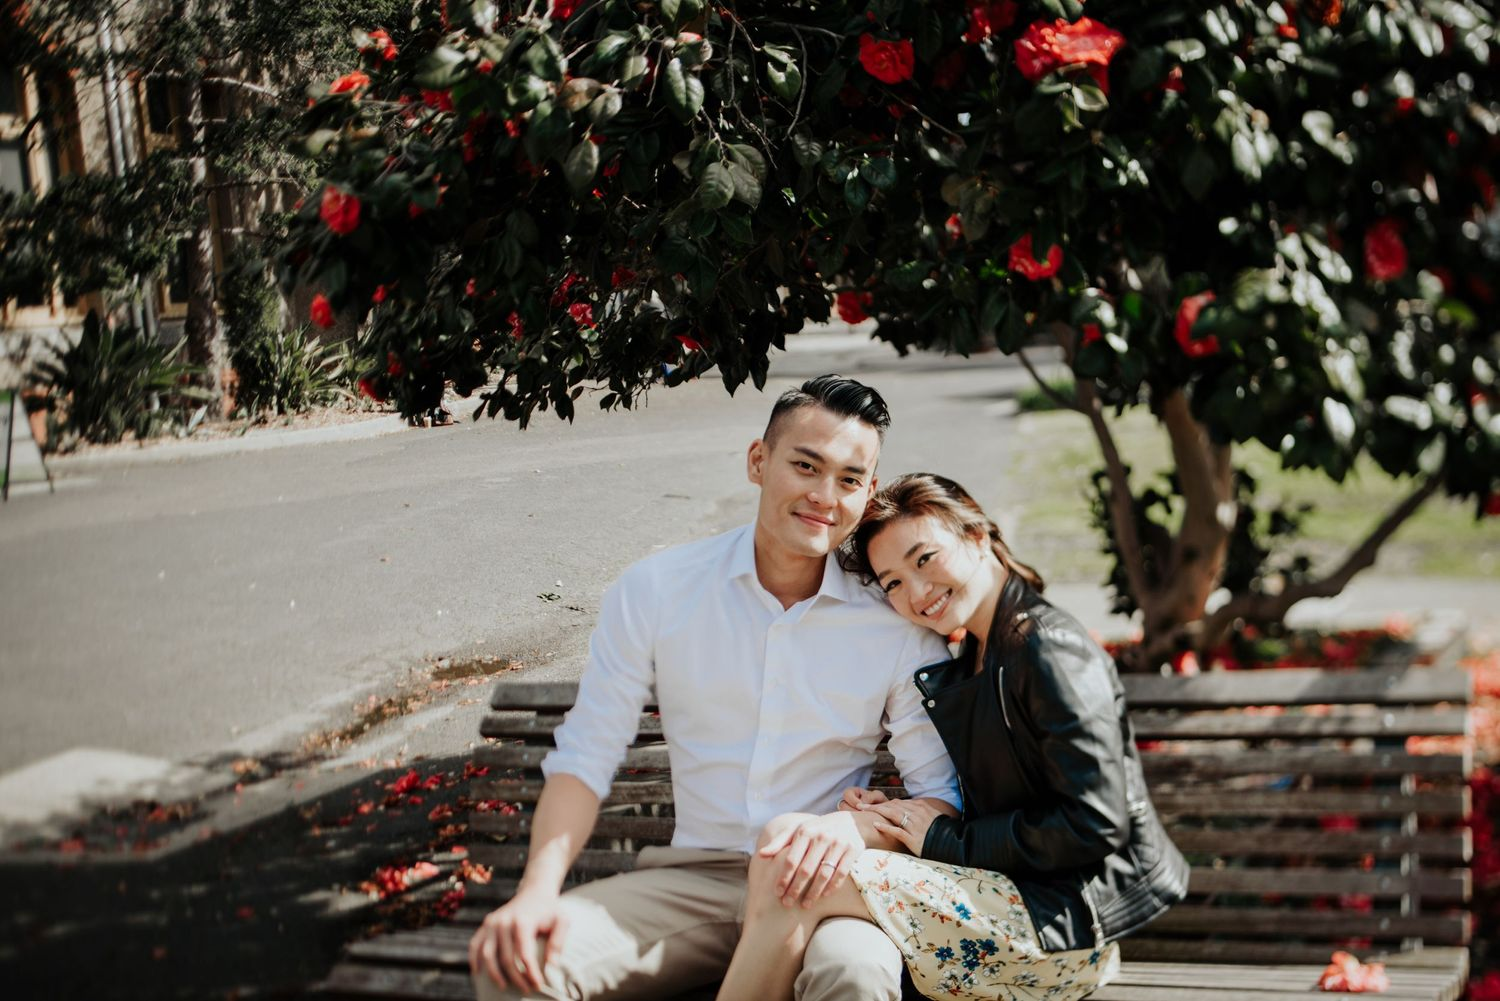 Candid relaxed international wedding prewedding engagement photography Hong Kong couple in Melbourne